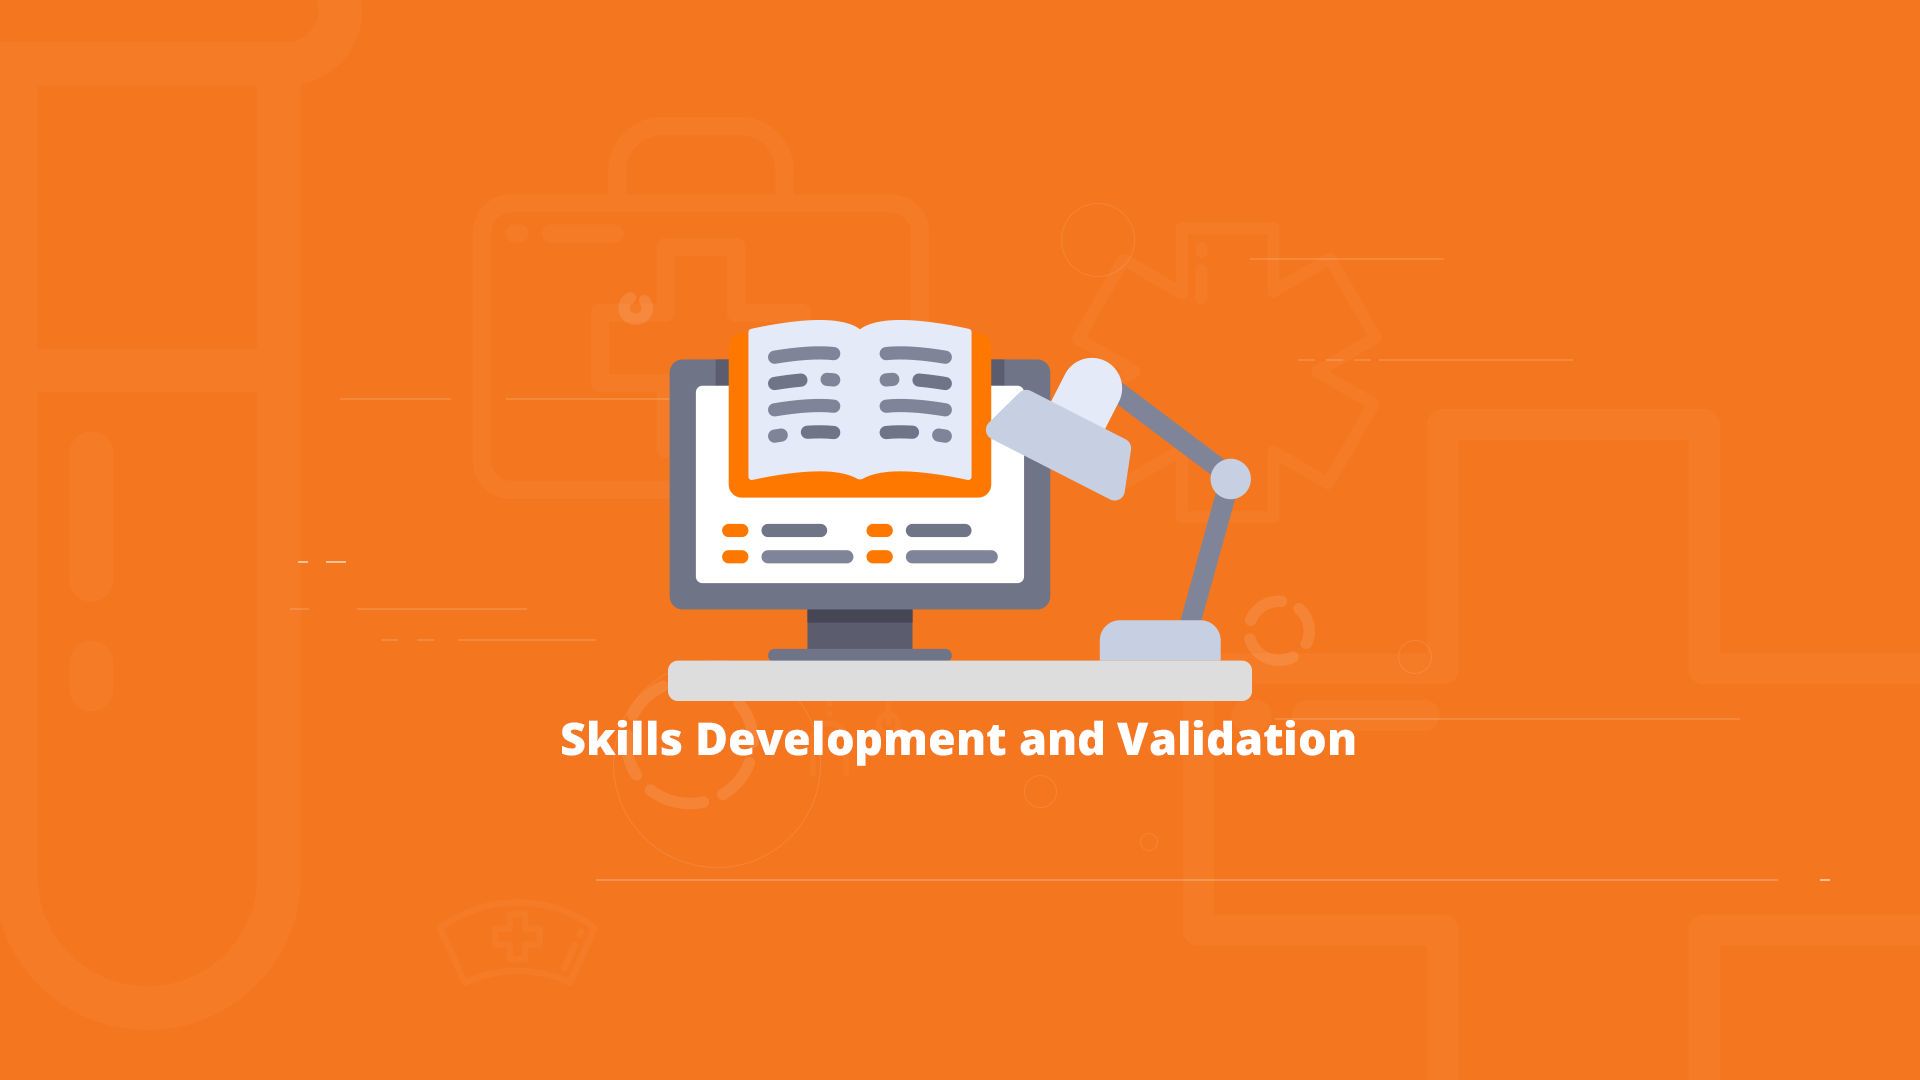 01513335_promote_lifelong_learning_styleframes_v2sf_05---_Evidence-based-skills-development-and-validation,-as-well-as-i.png